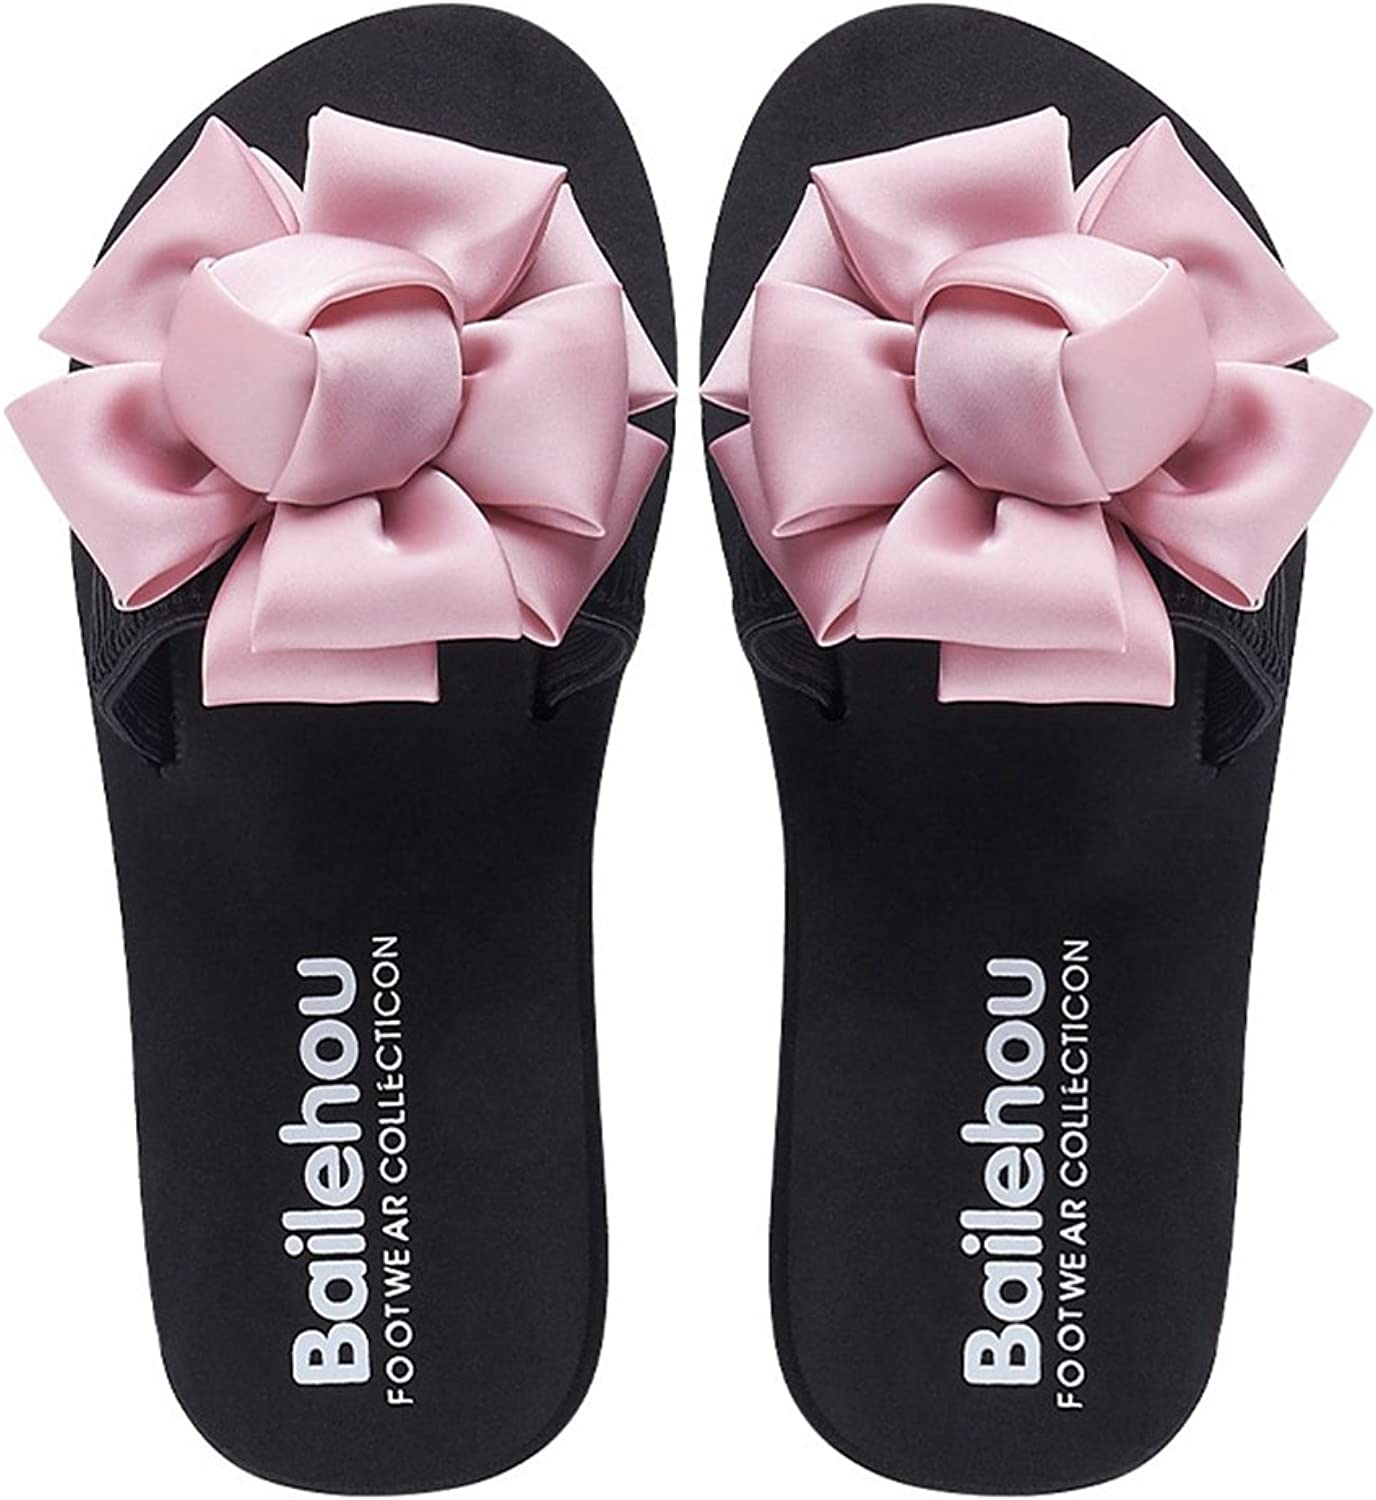 Btrada Slide Sandals for Women Bohemian Bowknot Flower Platform Flats Summer Anti-Slip Beach Slippers